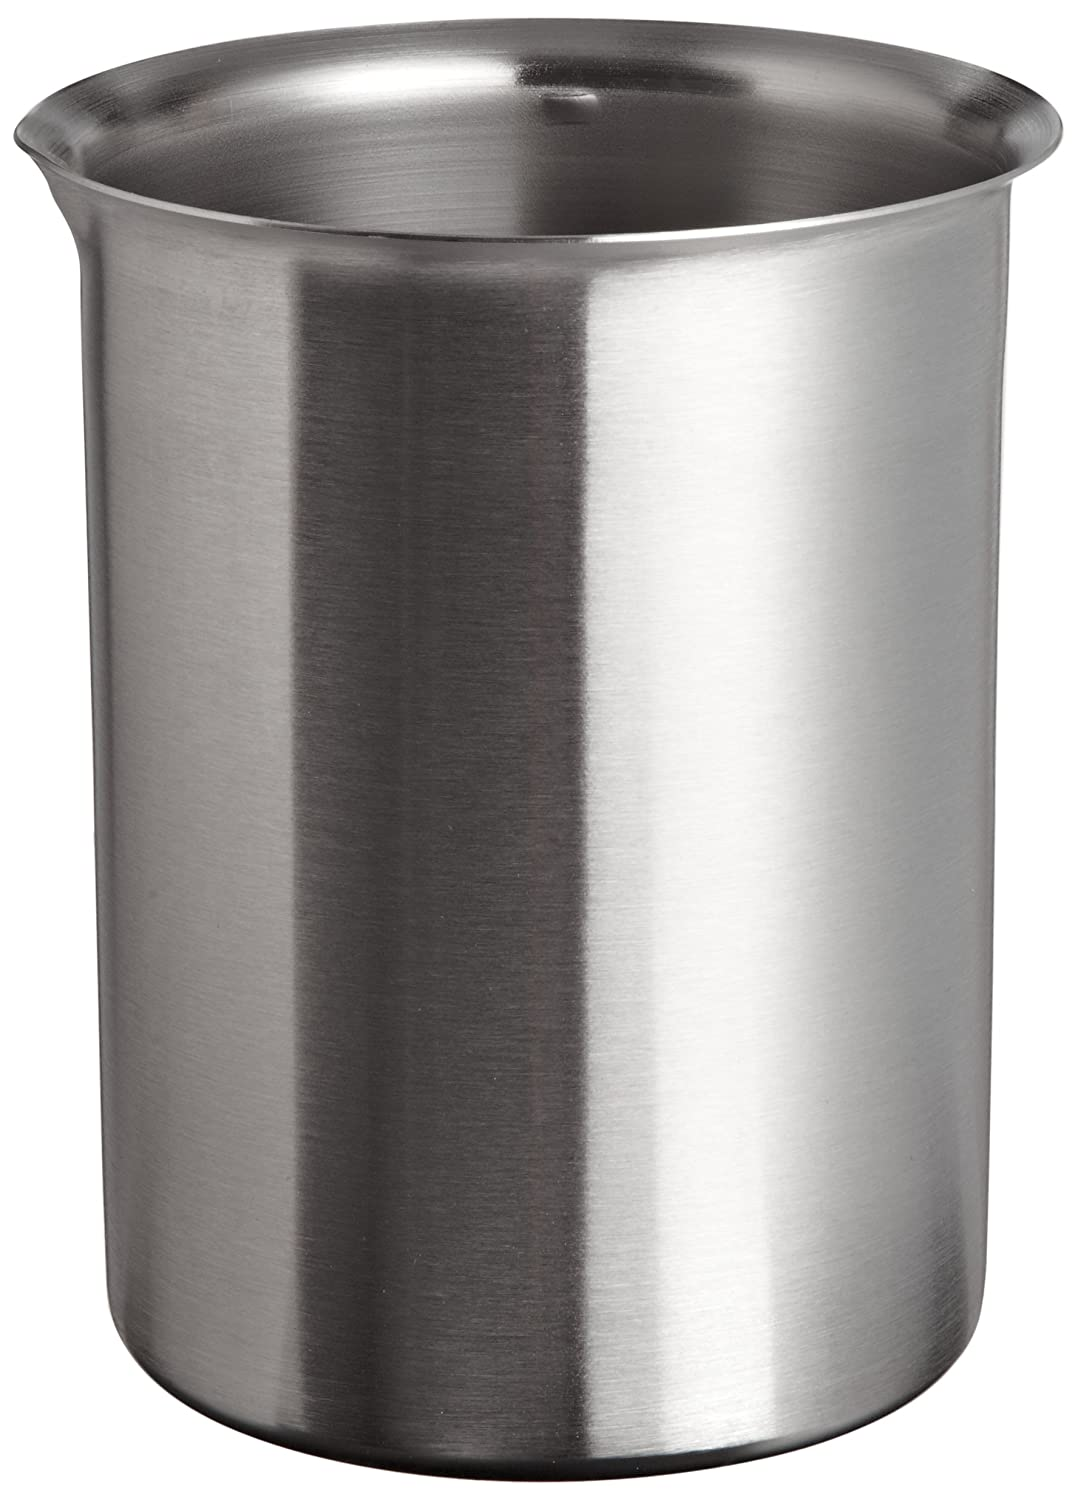 Polar Ware 1200B Stainless Steel Griffin Beaker mL Fashionable Bombing free shipping C 1200 Style